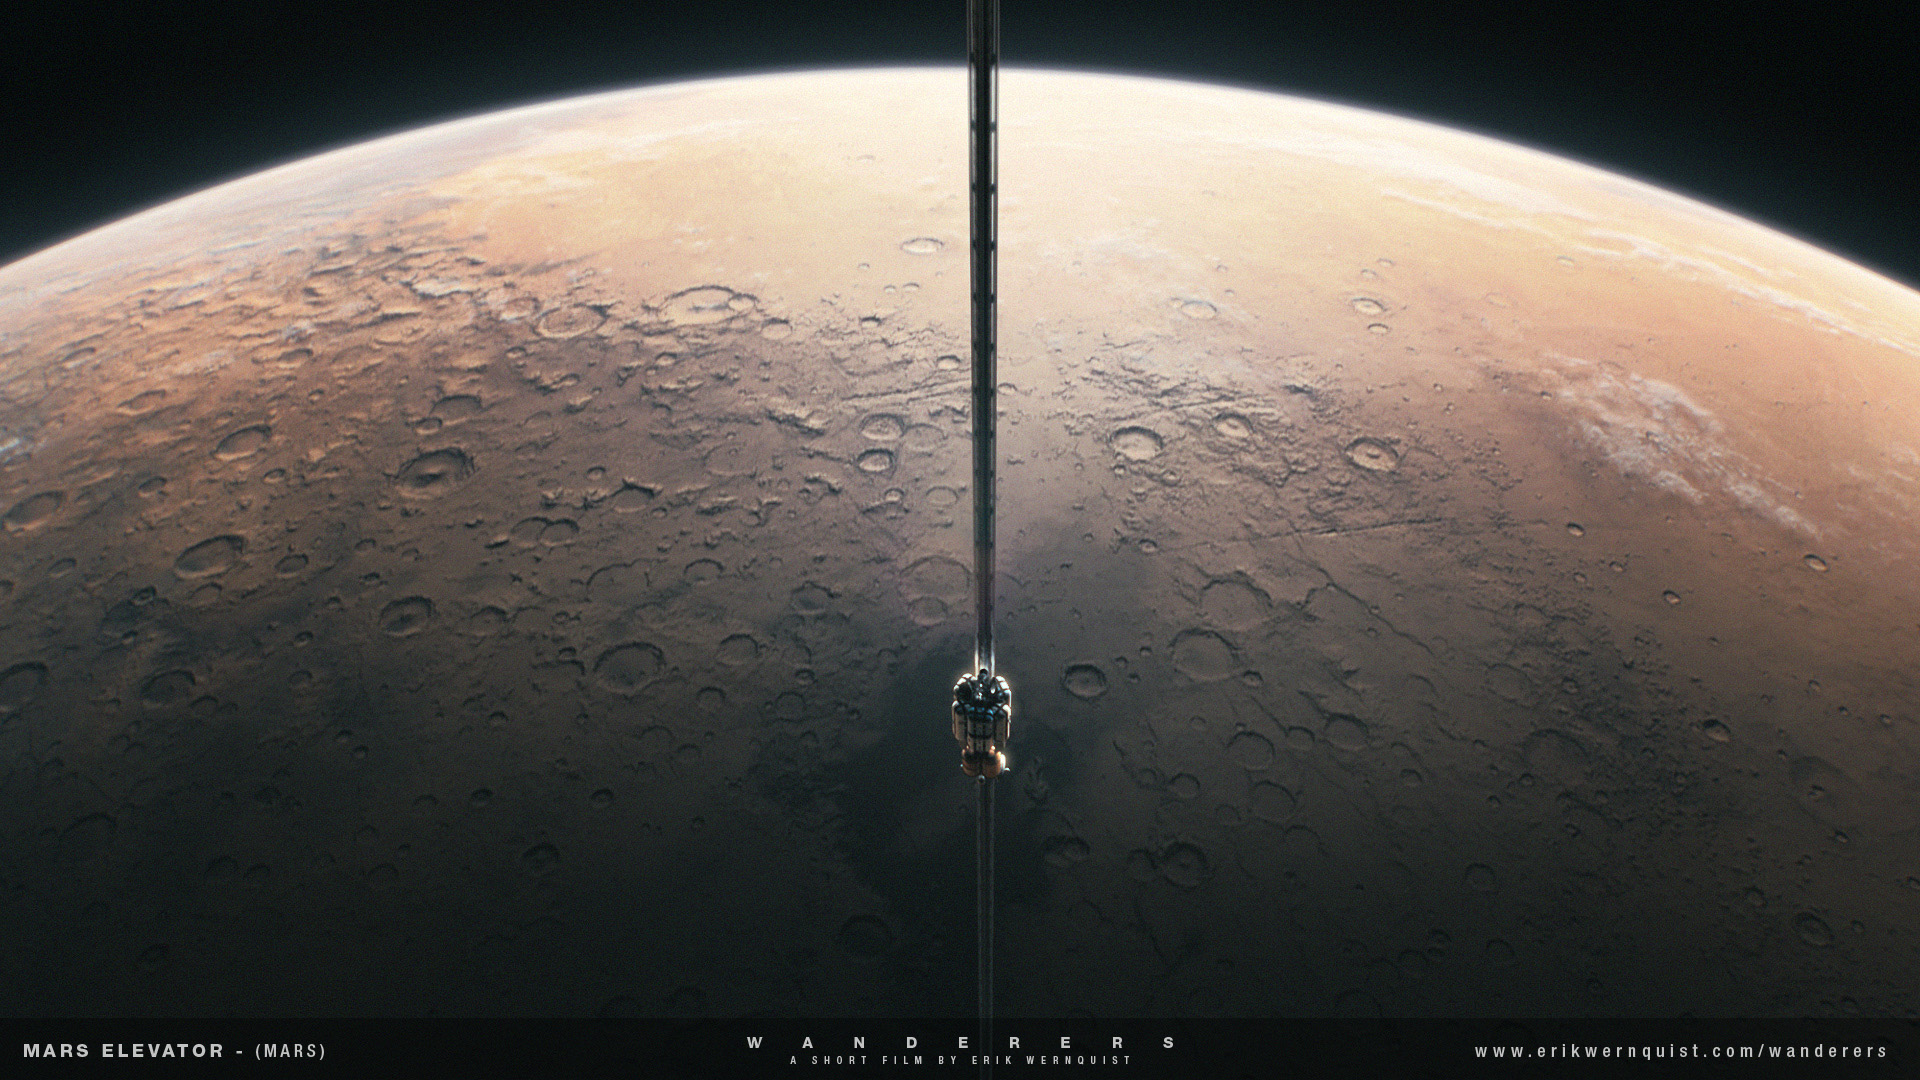 """""""This shot follows the cabin of a space elevator descending on a cable towards the northern parts of the Terra Cimmeria highlands on Mars. A large settlement, hinted as glowing lights in the dark, can be seen far below on the ground. One of Mars' two moons - Phobos - is seen above the cabin to the left of the cable in the beginning of the shot."""" This image was produced by Erik Wernquist."""